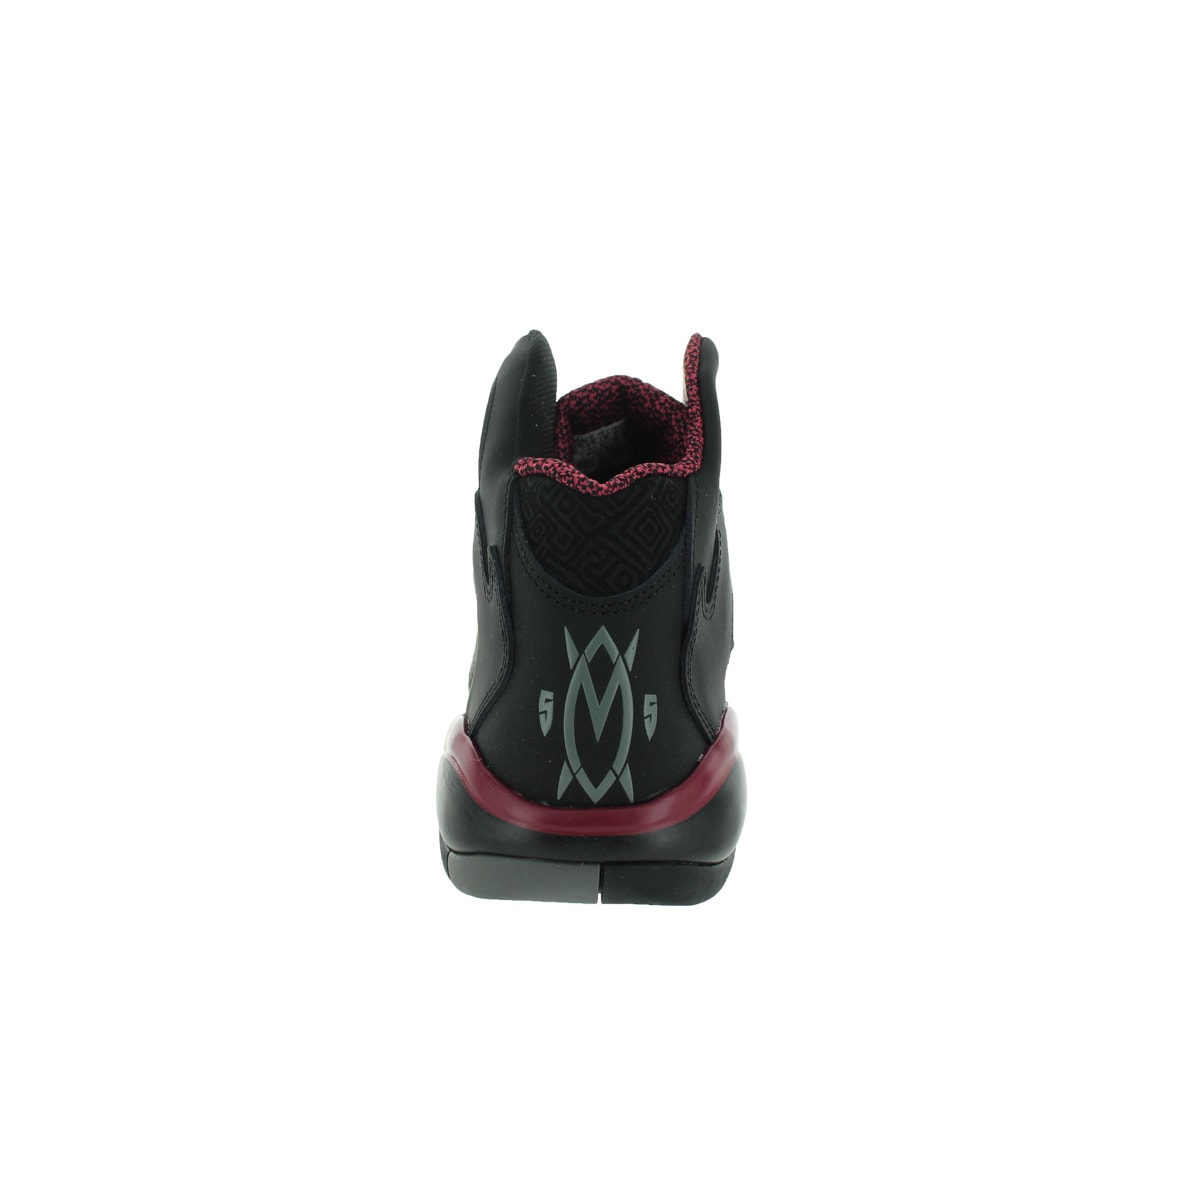 Shop Adidas Men s Mutombo 2 Originals Black Black Burgundy Basketball Shoe  - Free Shipping Today - Overstock.com - 12346814 475faa539